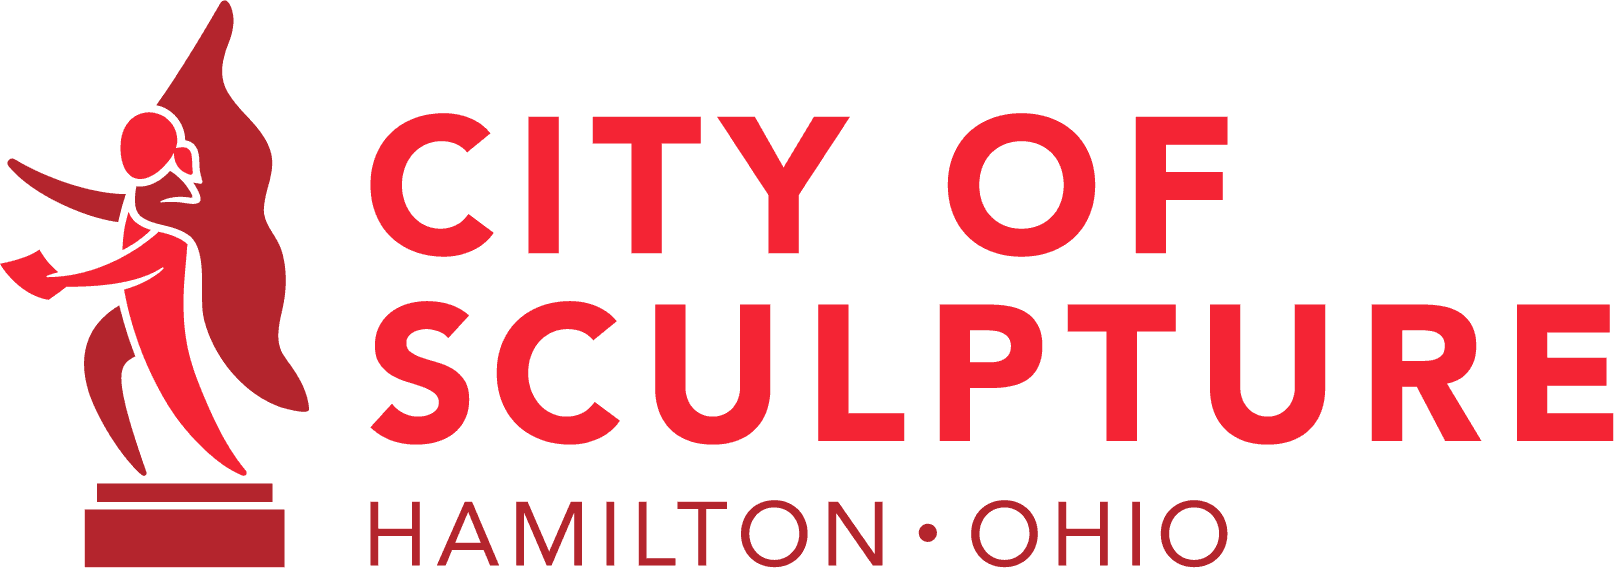 hamilton ohio city of sculpture